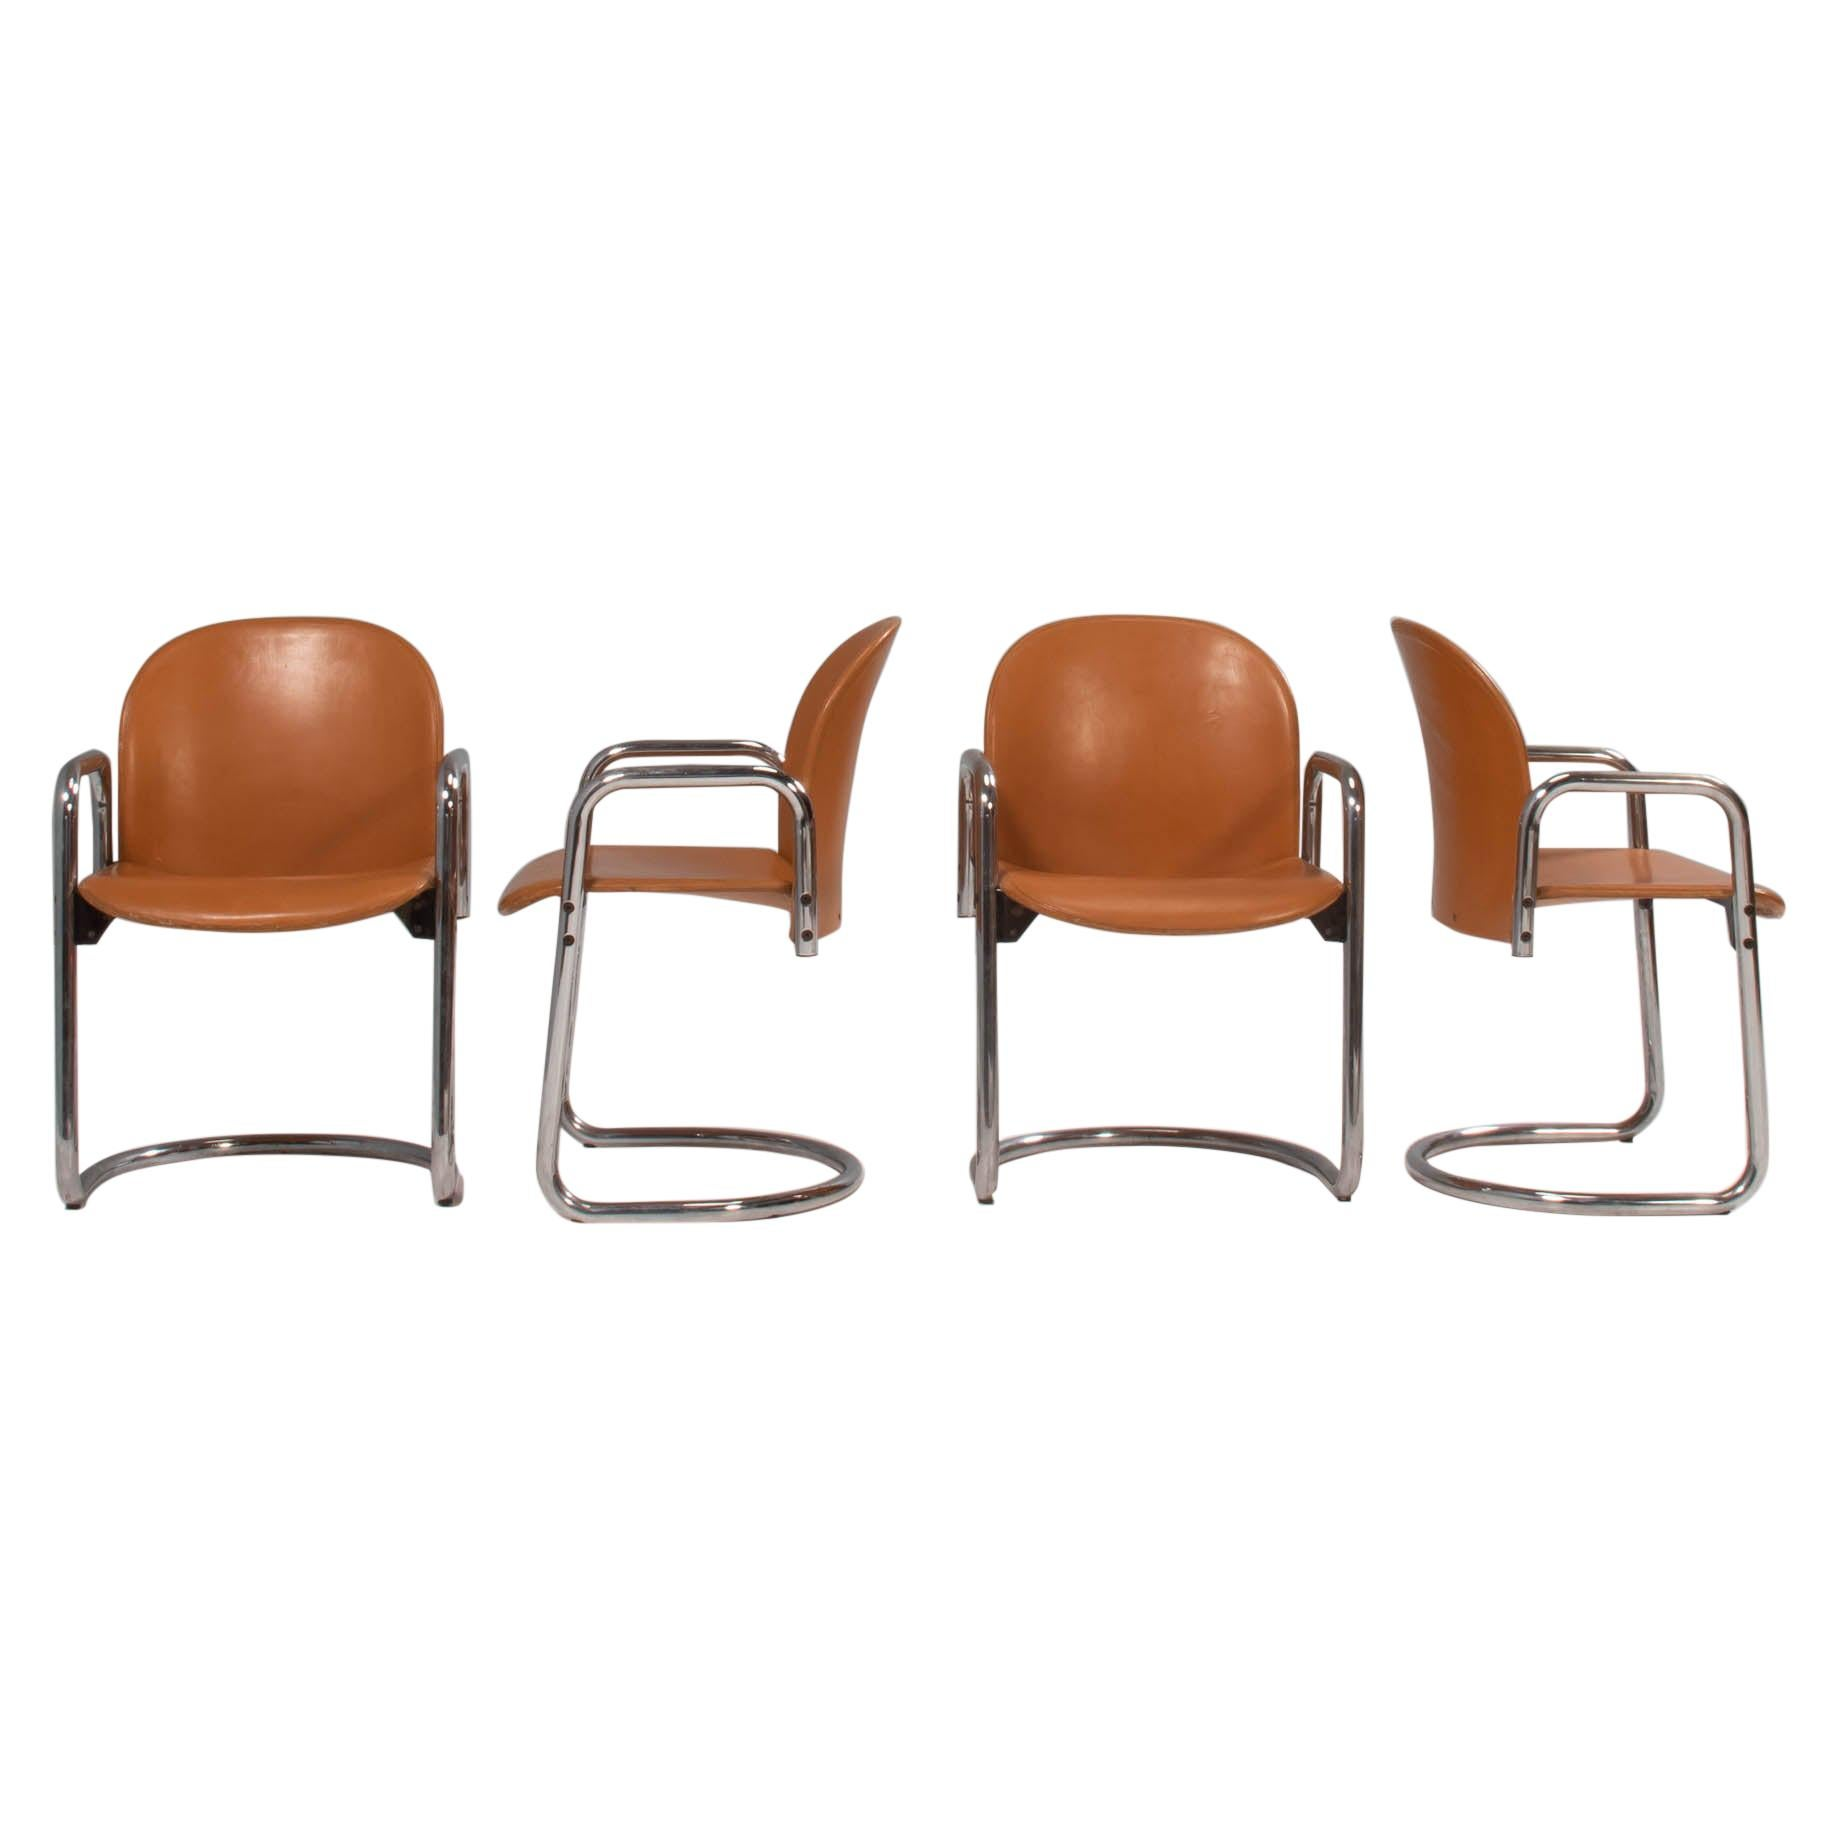 1970's Afra & Tobia Scarpa for B&B Italia Dialogo Dining Chairs, Set of 4